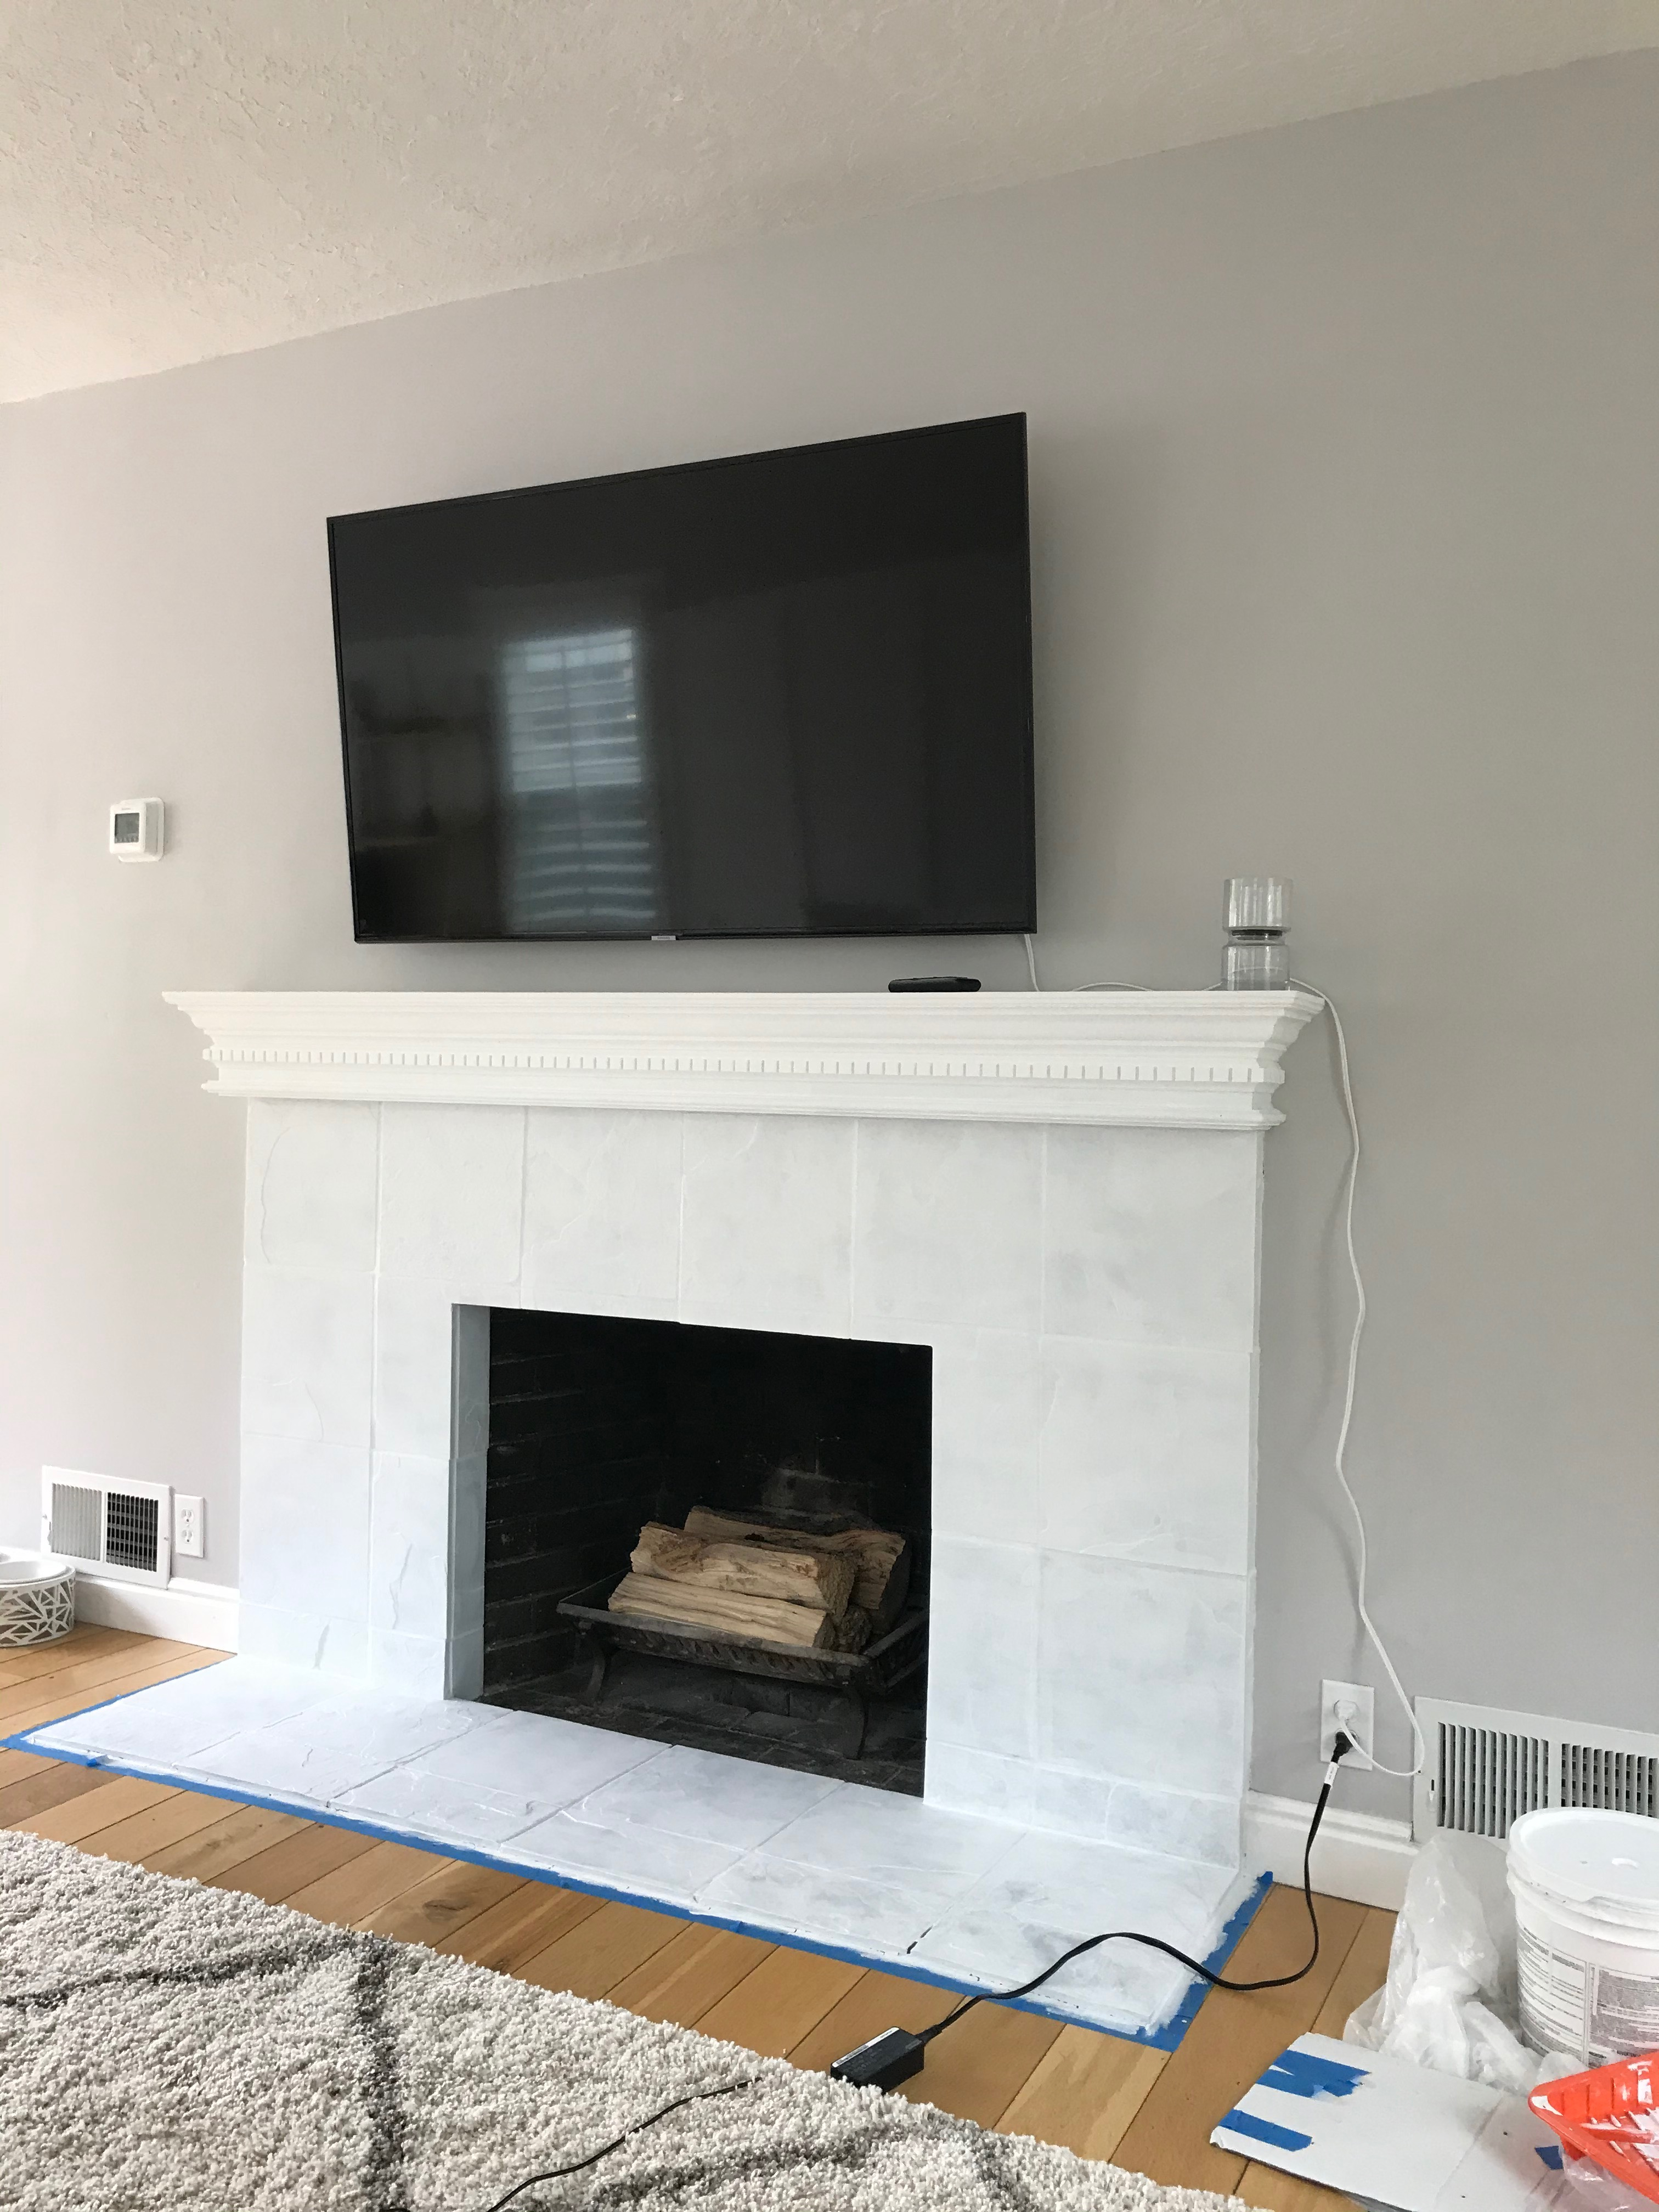 Painting a custom stencil for your fireplace mantel